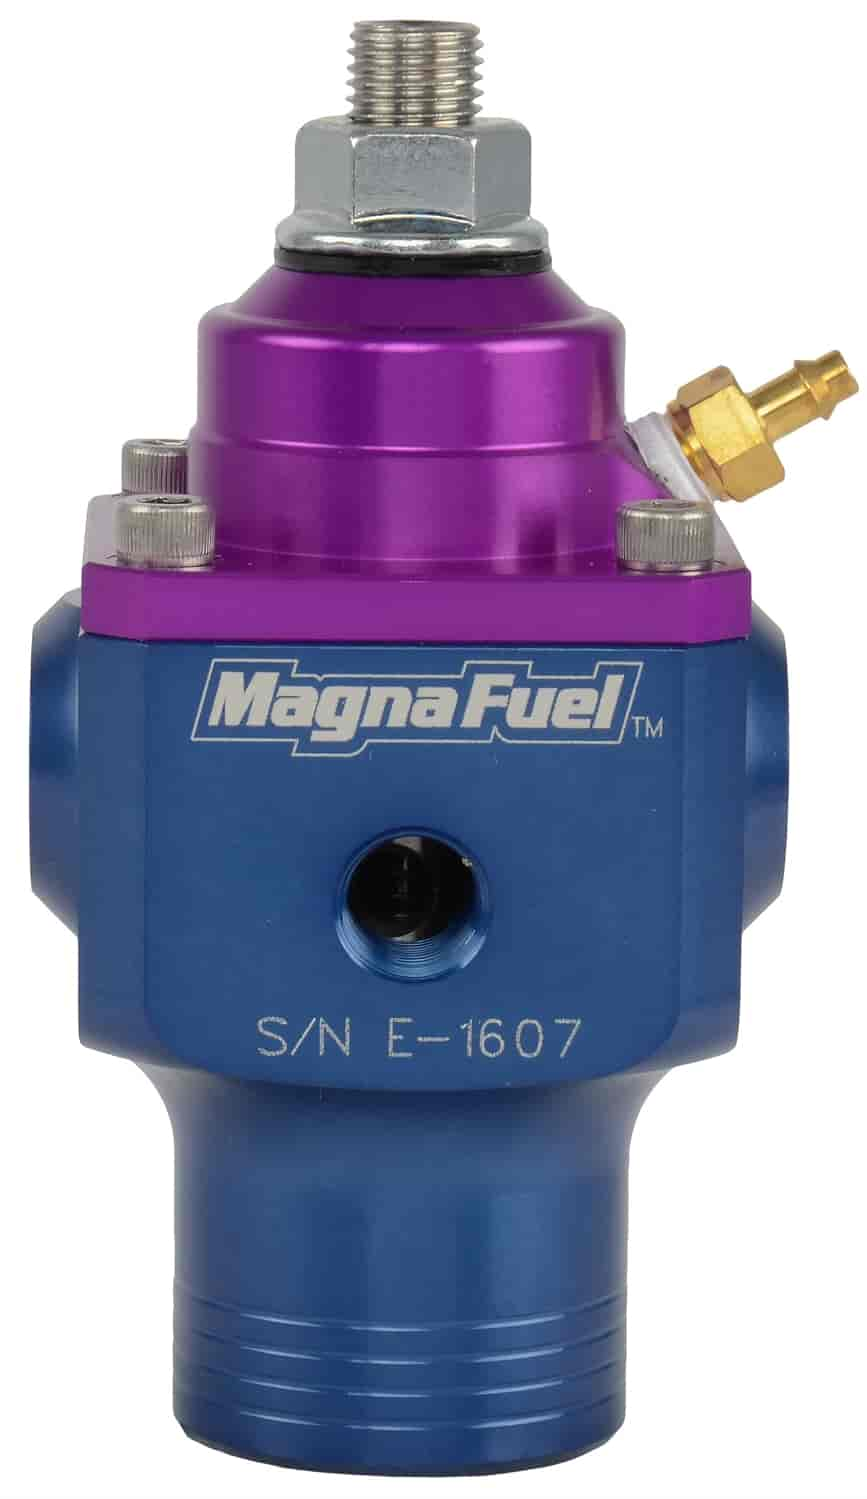 Magnafuel MP-9690 - MagnaFuel Carbureted Regulators & Fittings